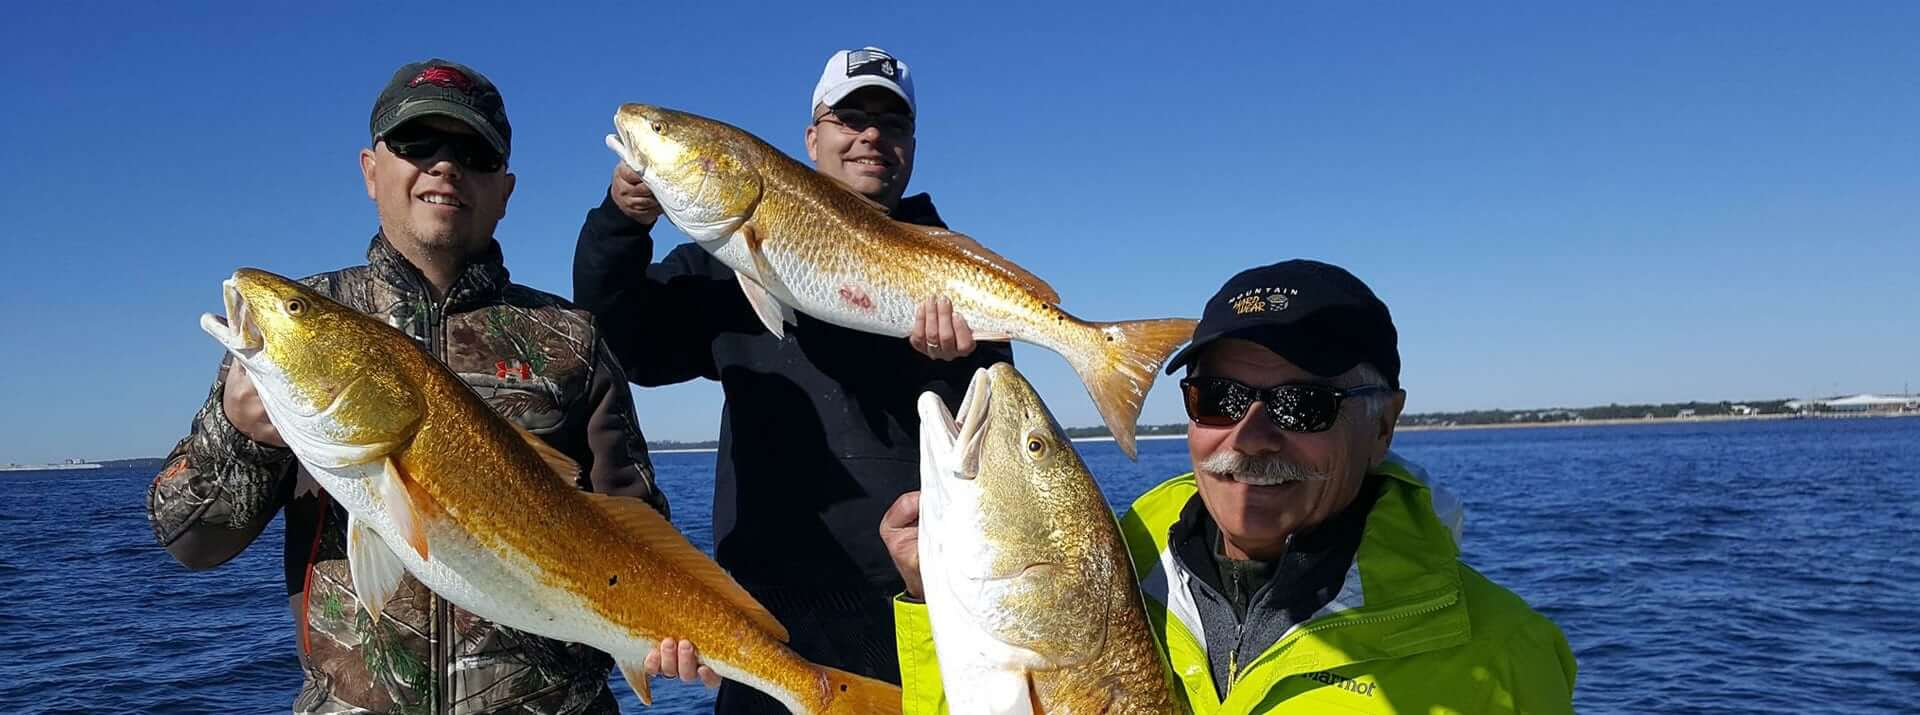 Pensacola fishing charter with Capt Doug Adams